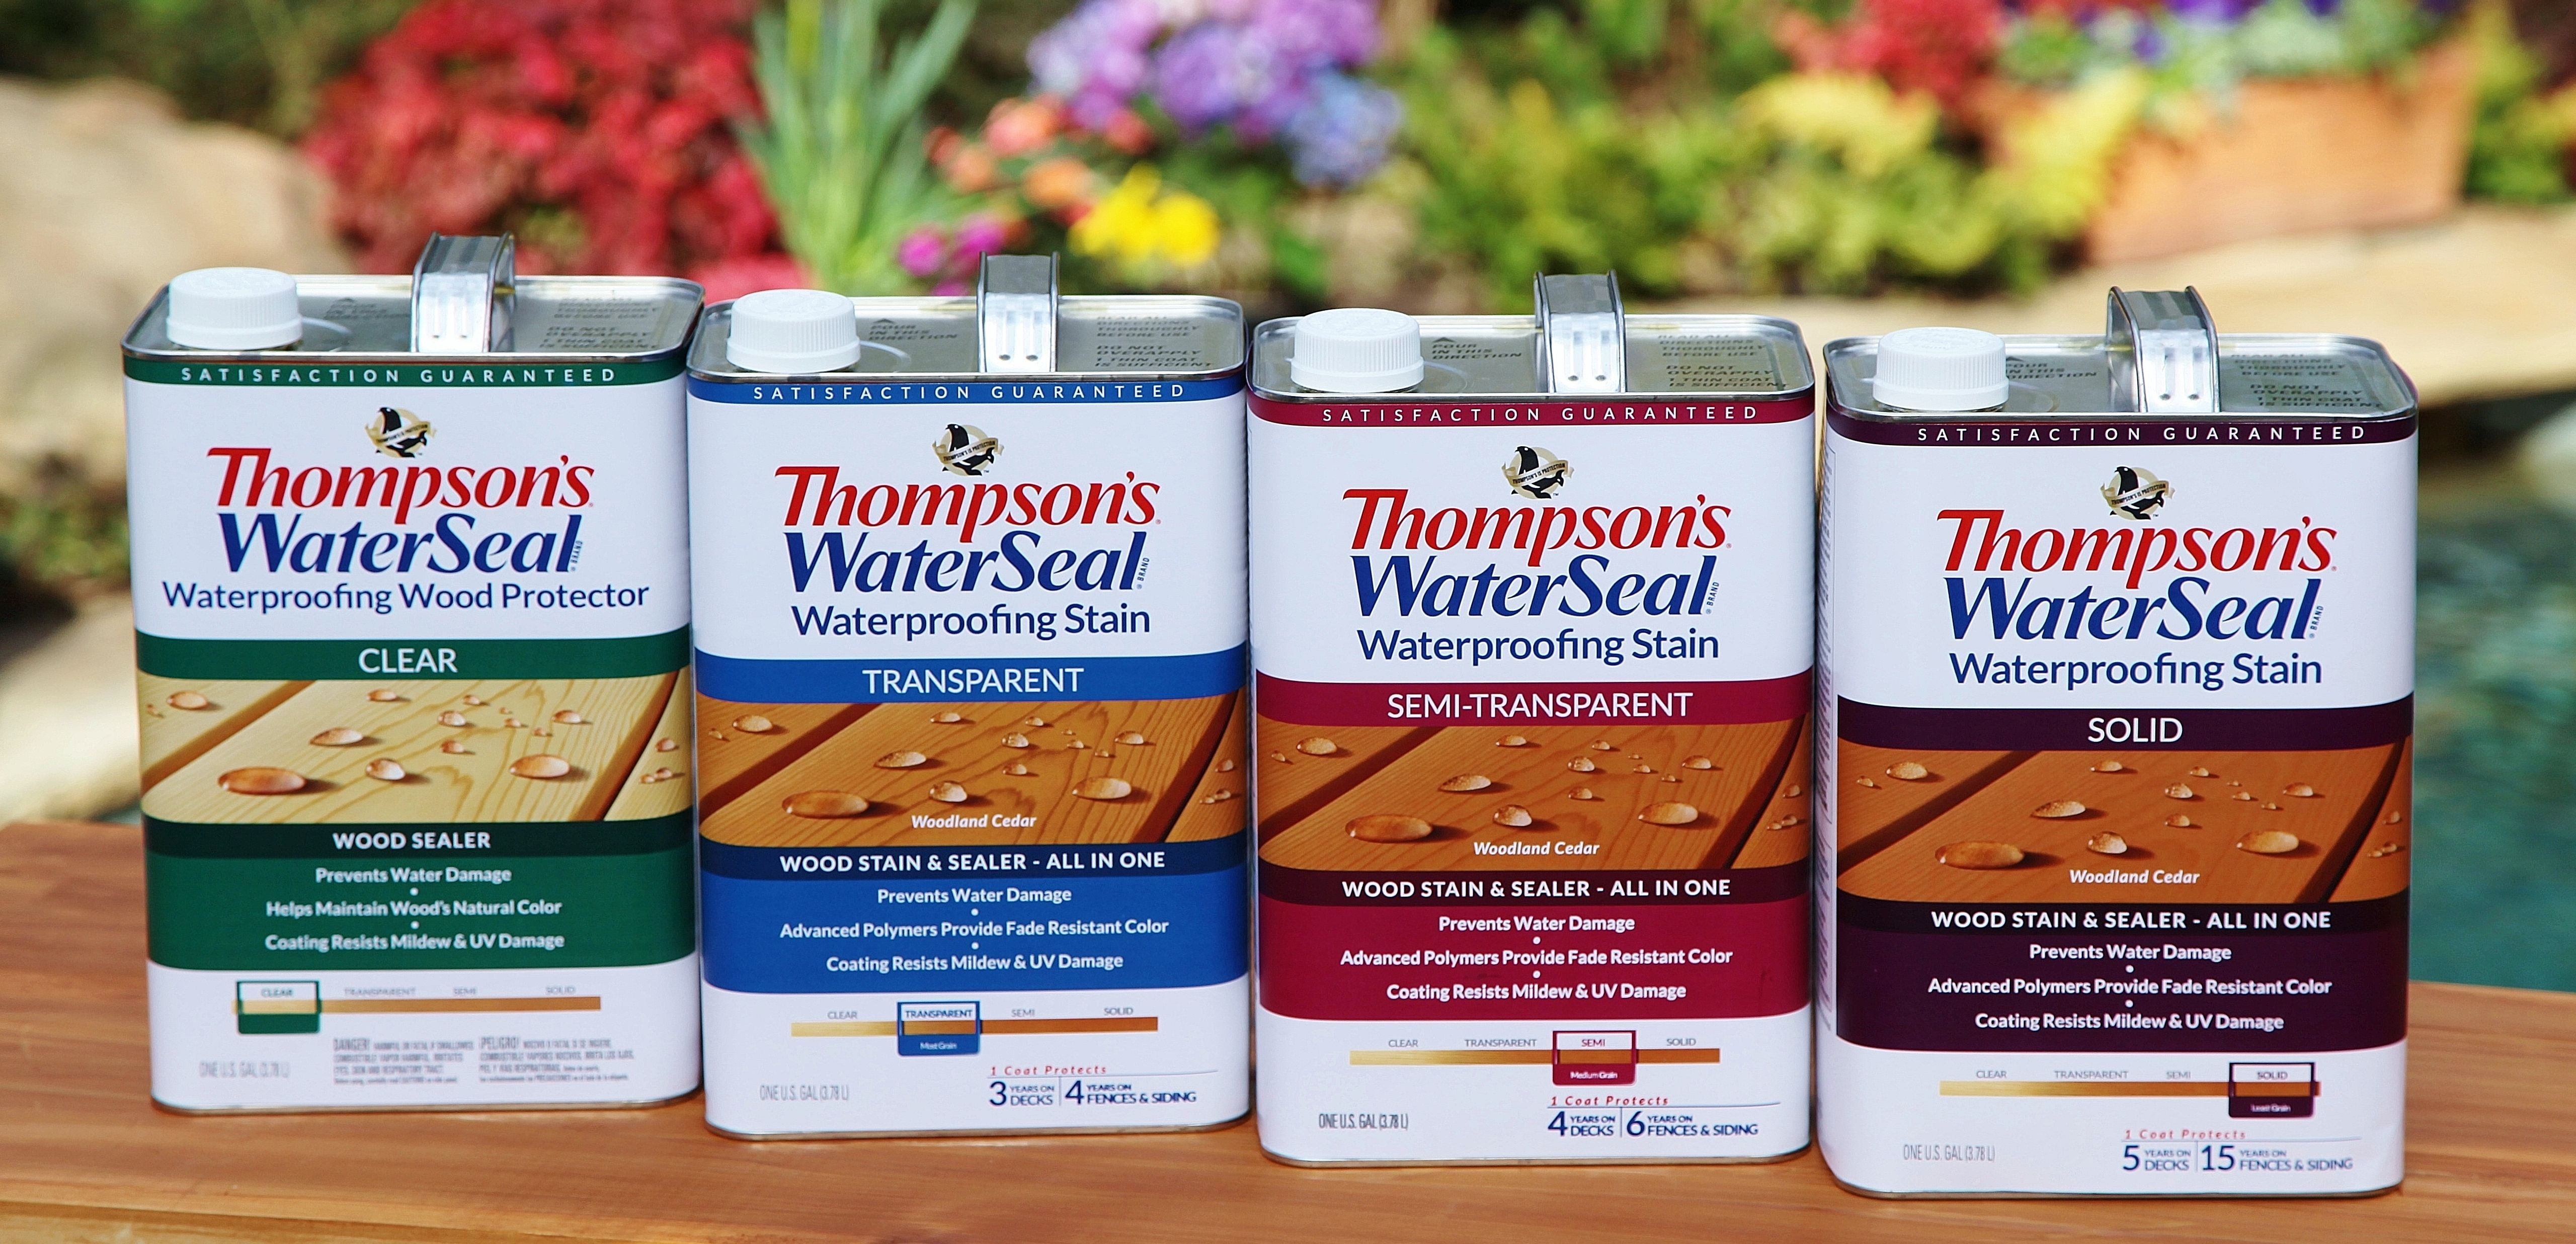 The New Thompson S Waterseal Waterproofing Stain Comes In A Consumer Preferred Square Can With A Sliding Scale Graph Staining Deck Best Deck Sealer Deck Sealer